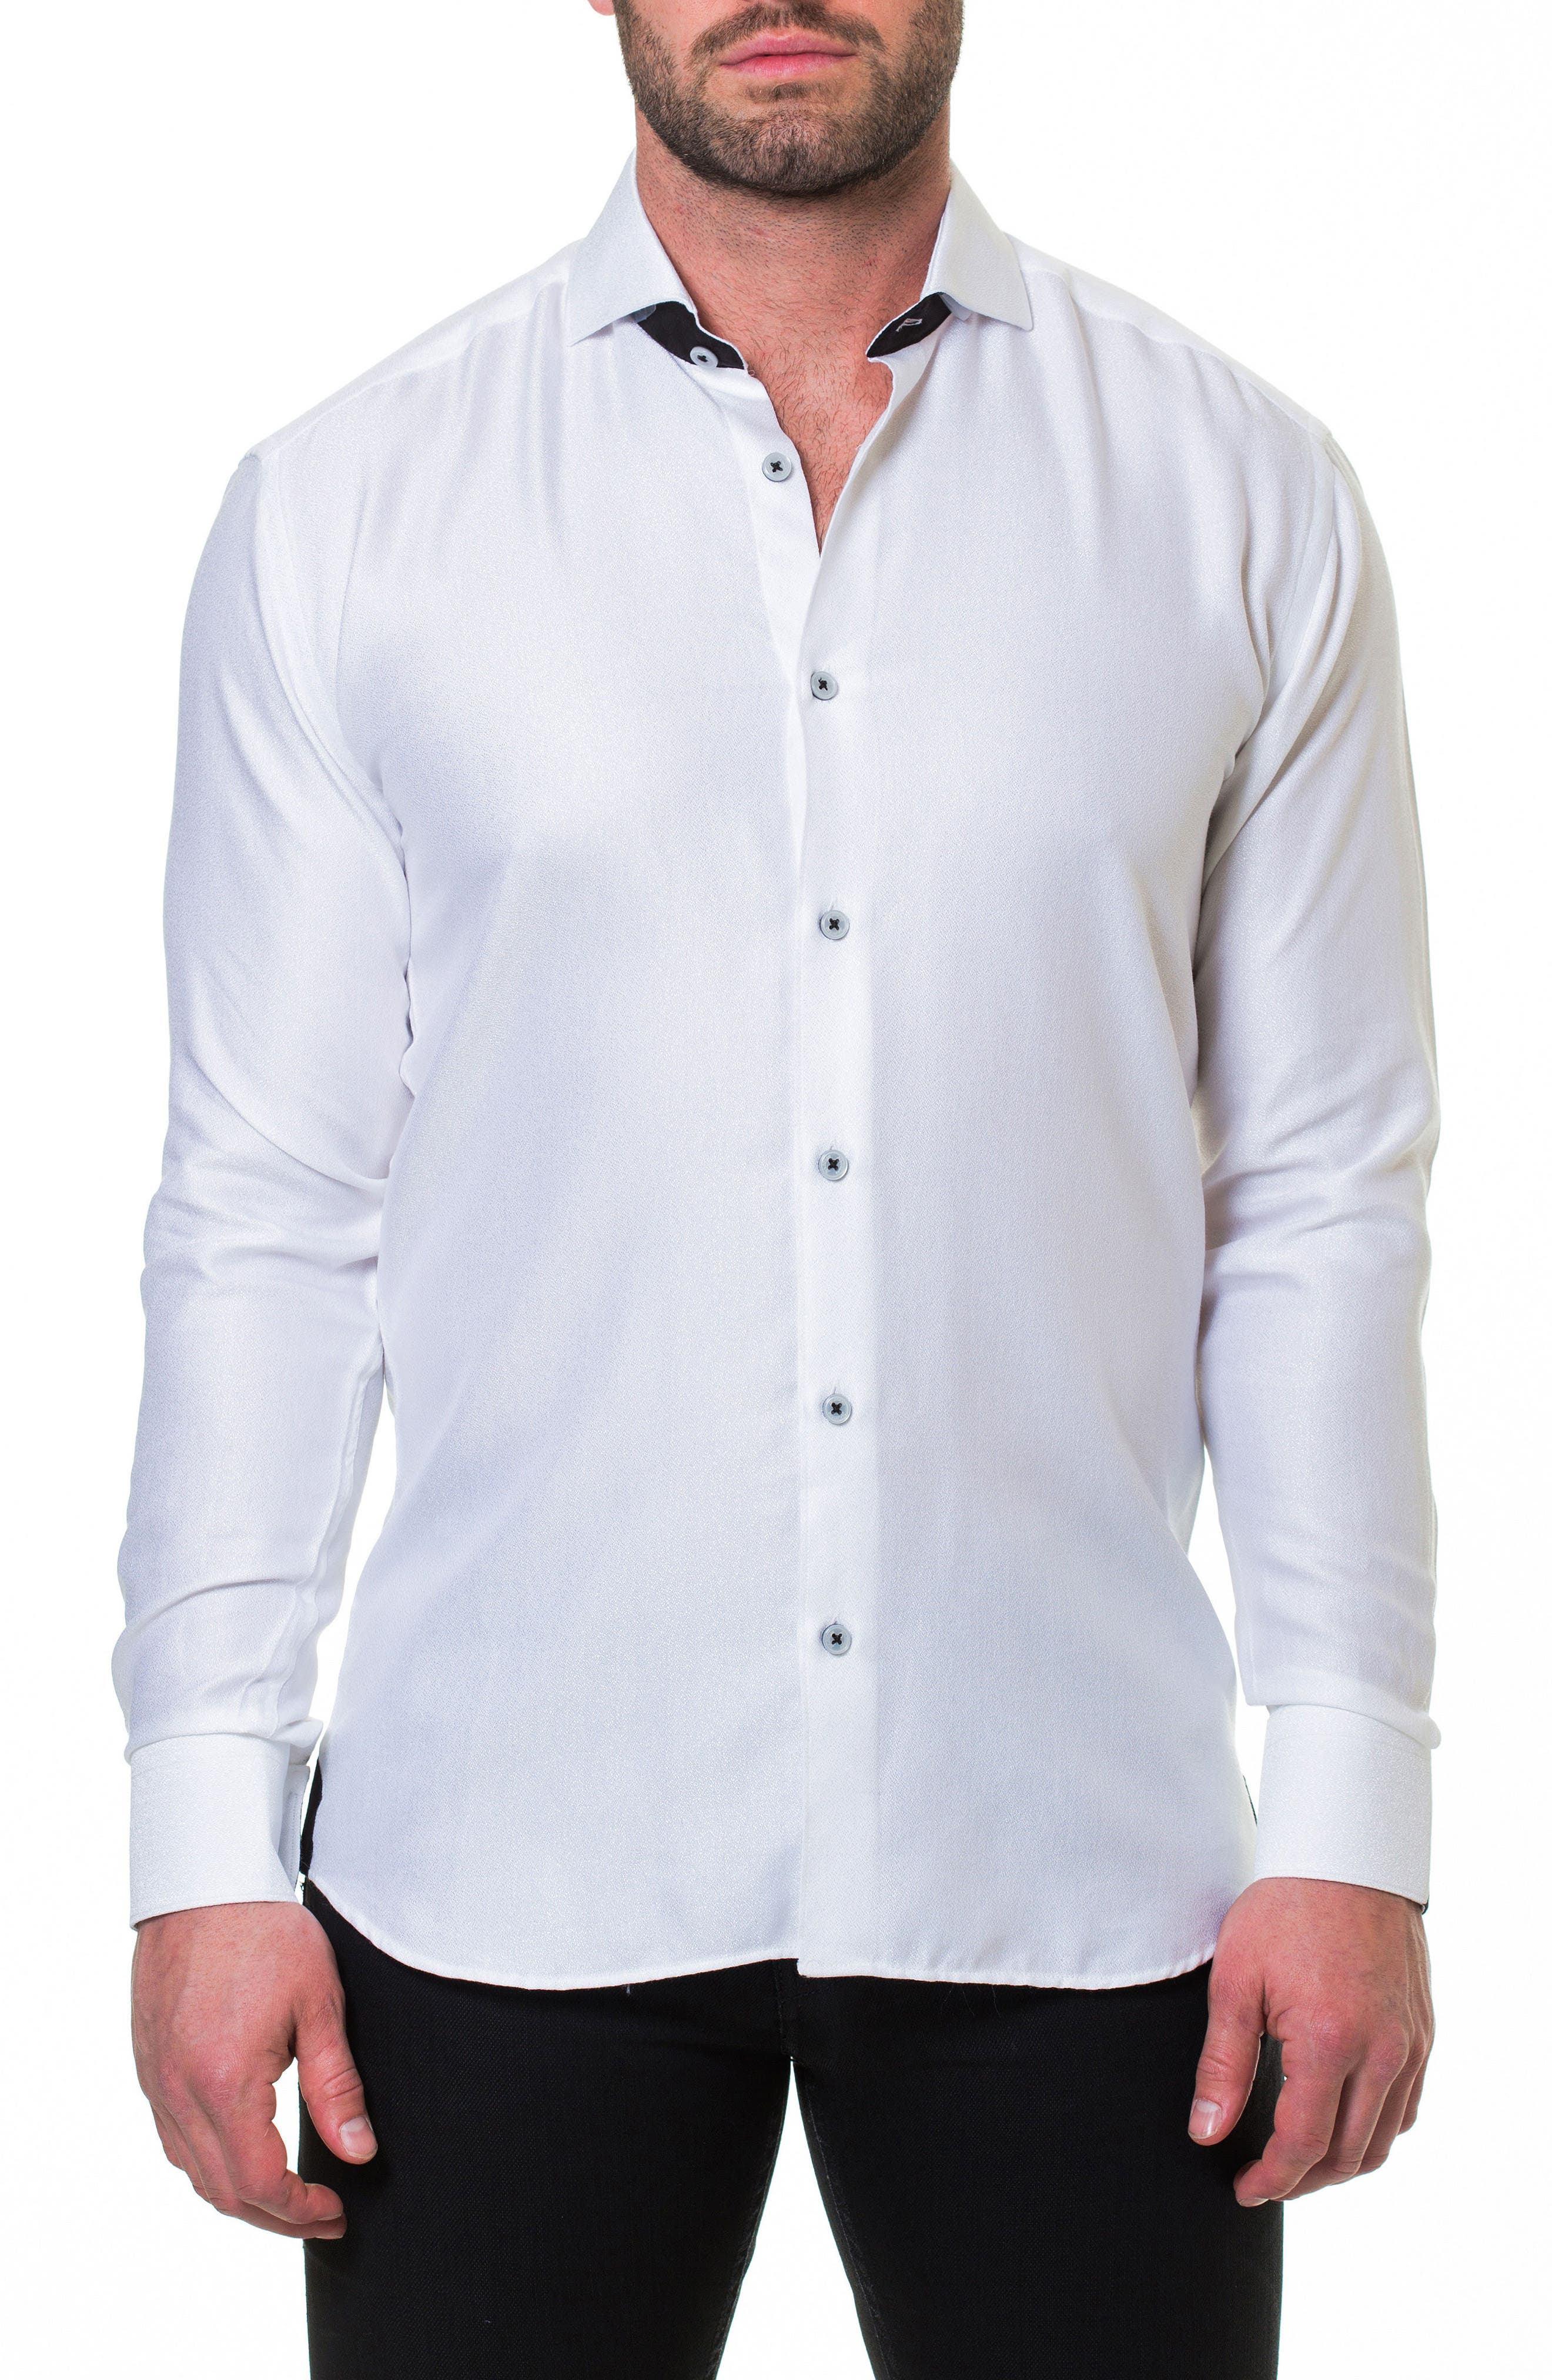 Wall Street Serenity White Slim Fit Sport Shirt,                             Main thumbnail 1, color,                             White